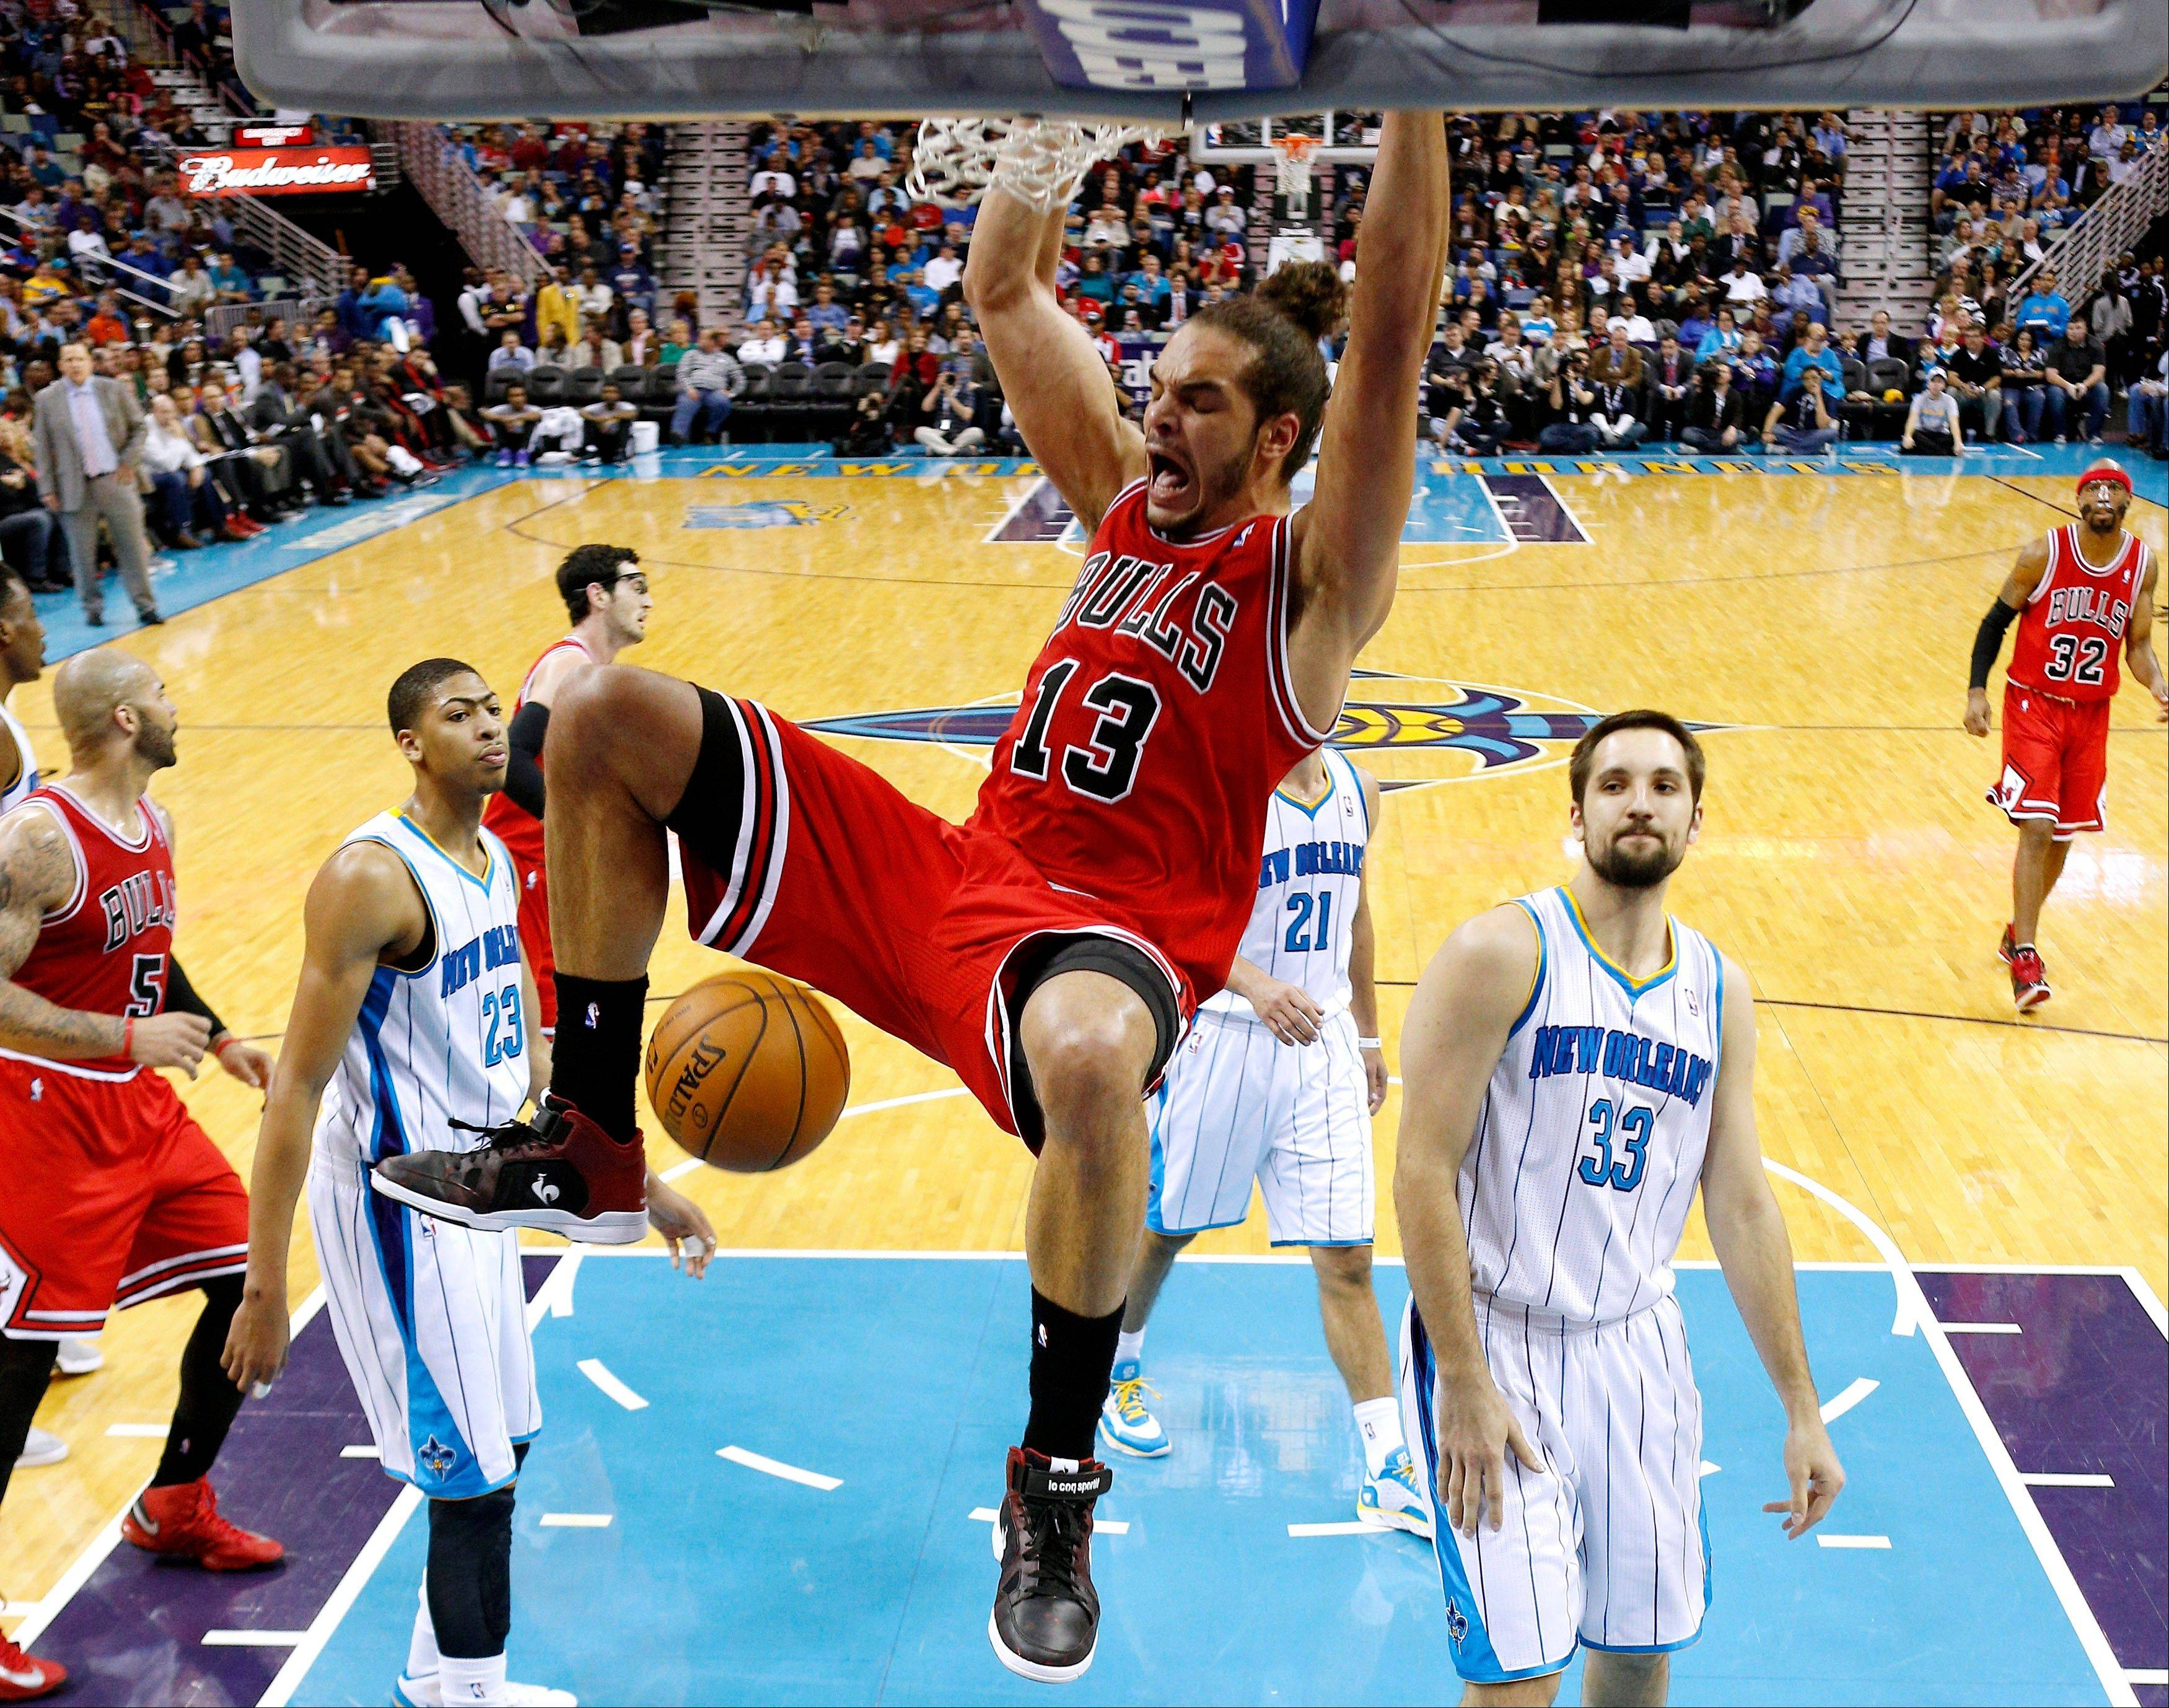 Chicago Bulls center Joakim Noah (13) dunks over New Orleans Hornets forwards Ryan Anderson (33) and Anthony Davis (23) during the second half of an NBA basketball game in New Orleans Tuesday.